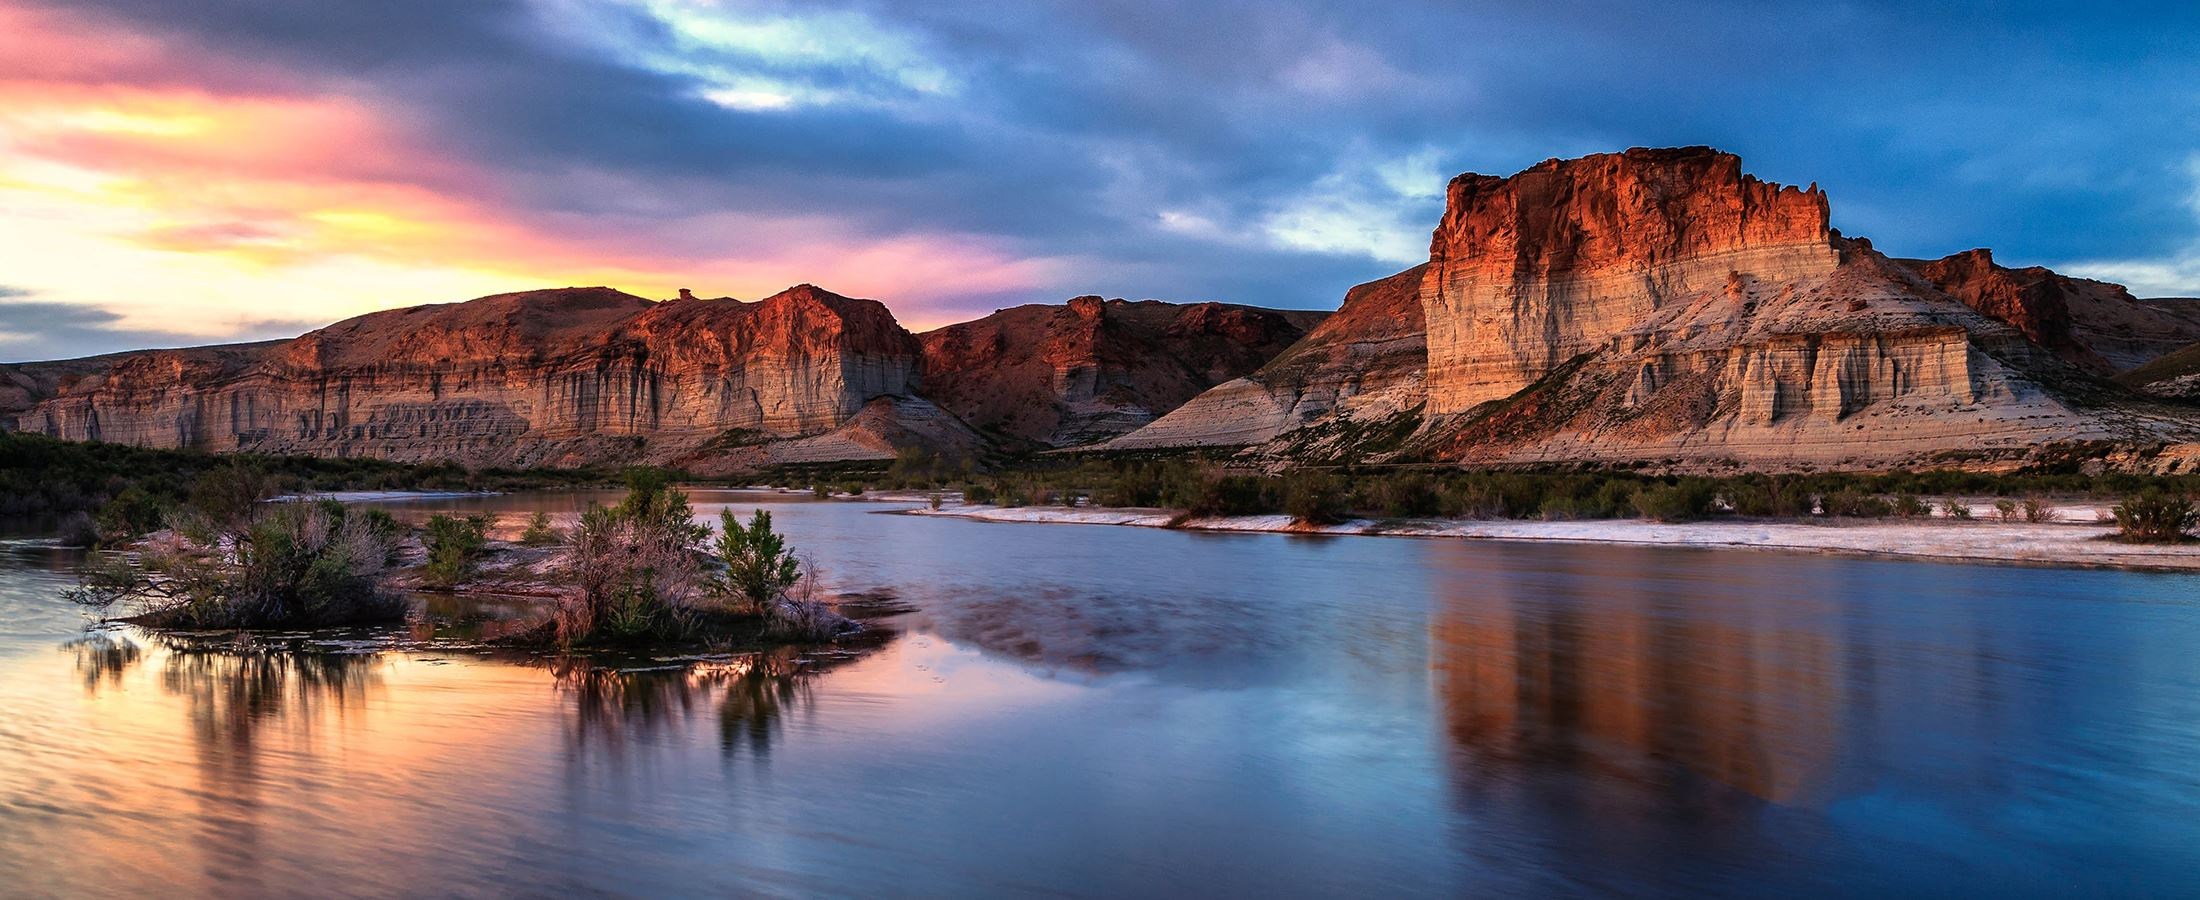 Recreation Center | Green River, WY